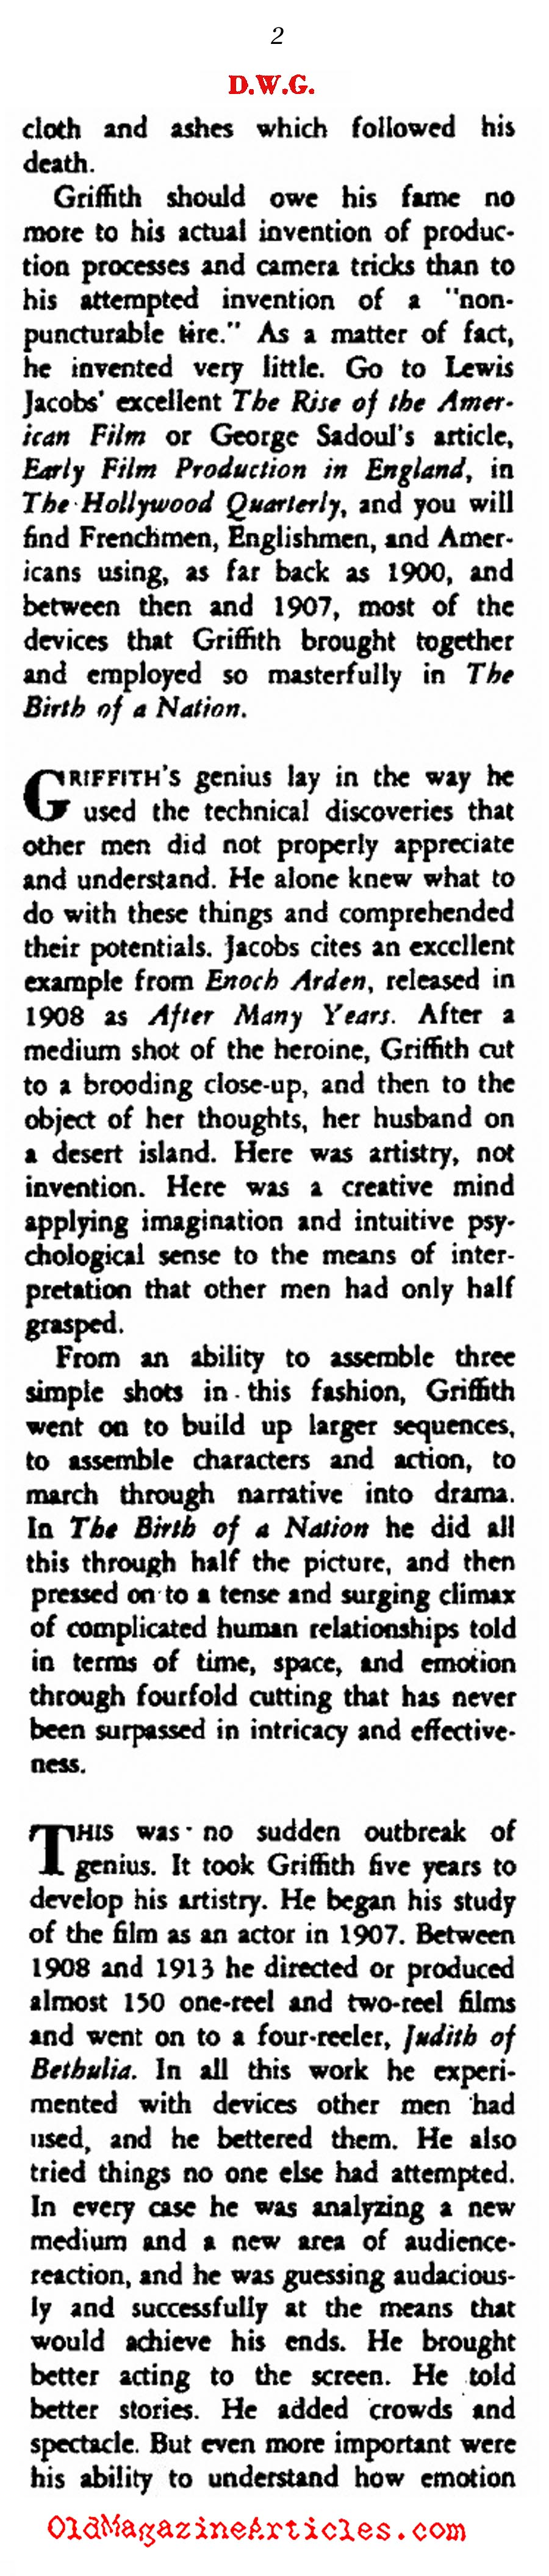 Back-Handed Compliments for D.W. Griffith (Rob Wagner's Script Magazine, 1948)